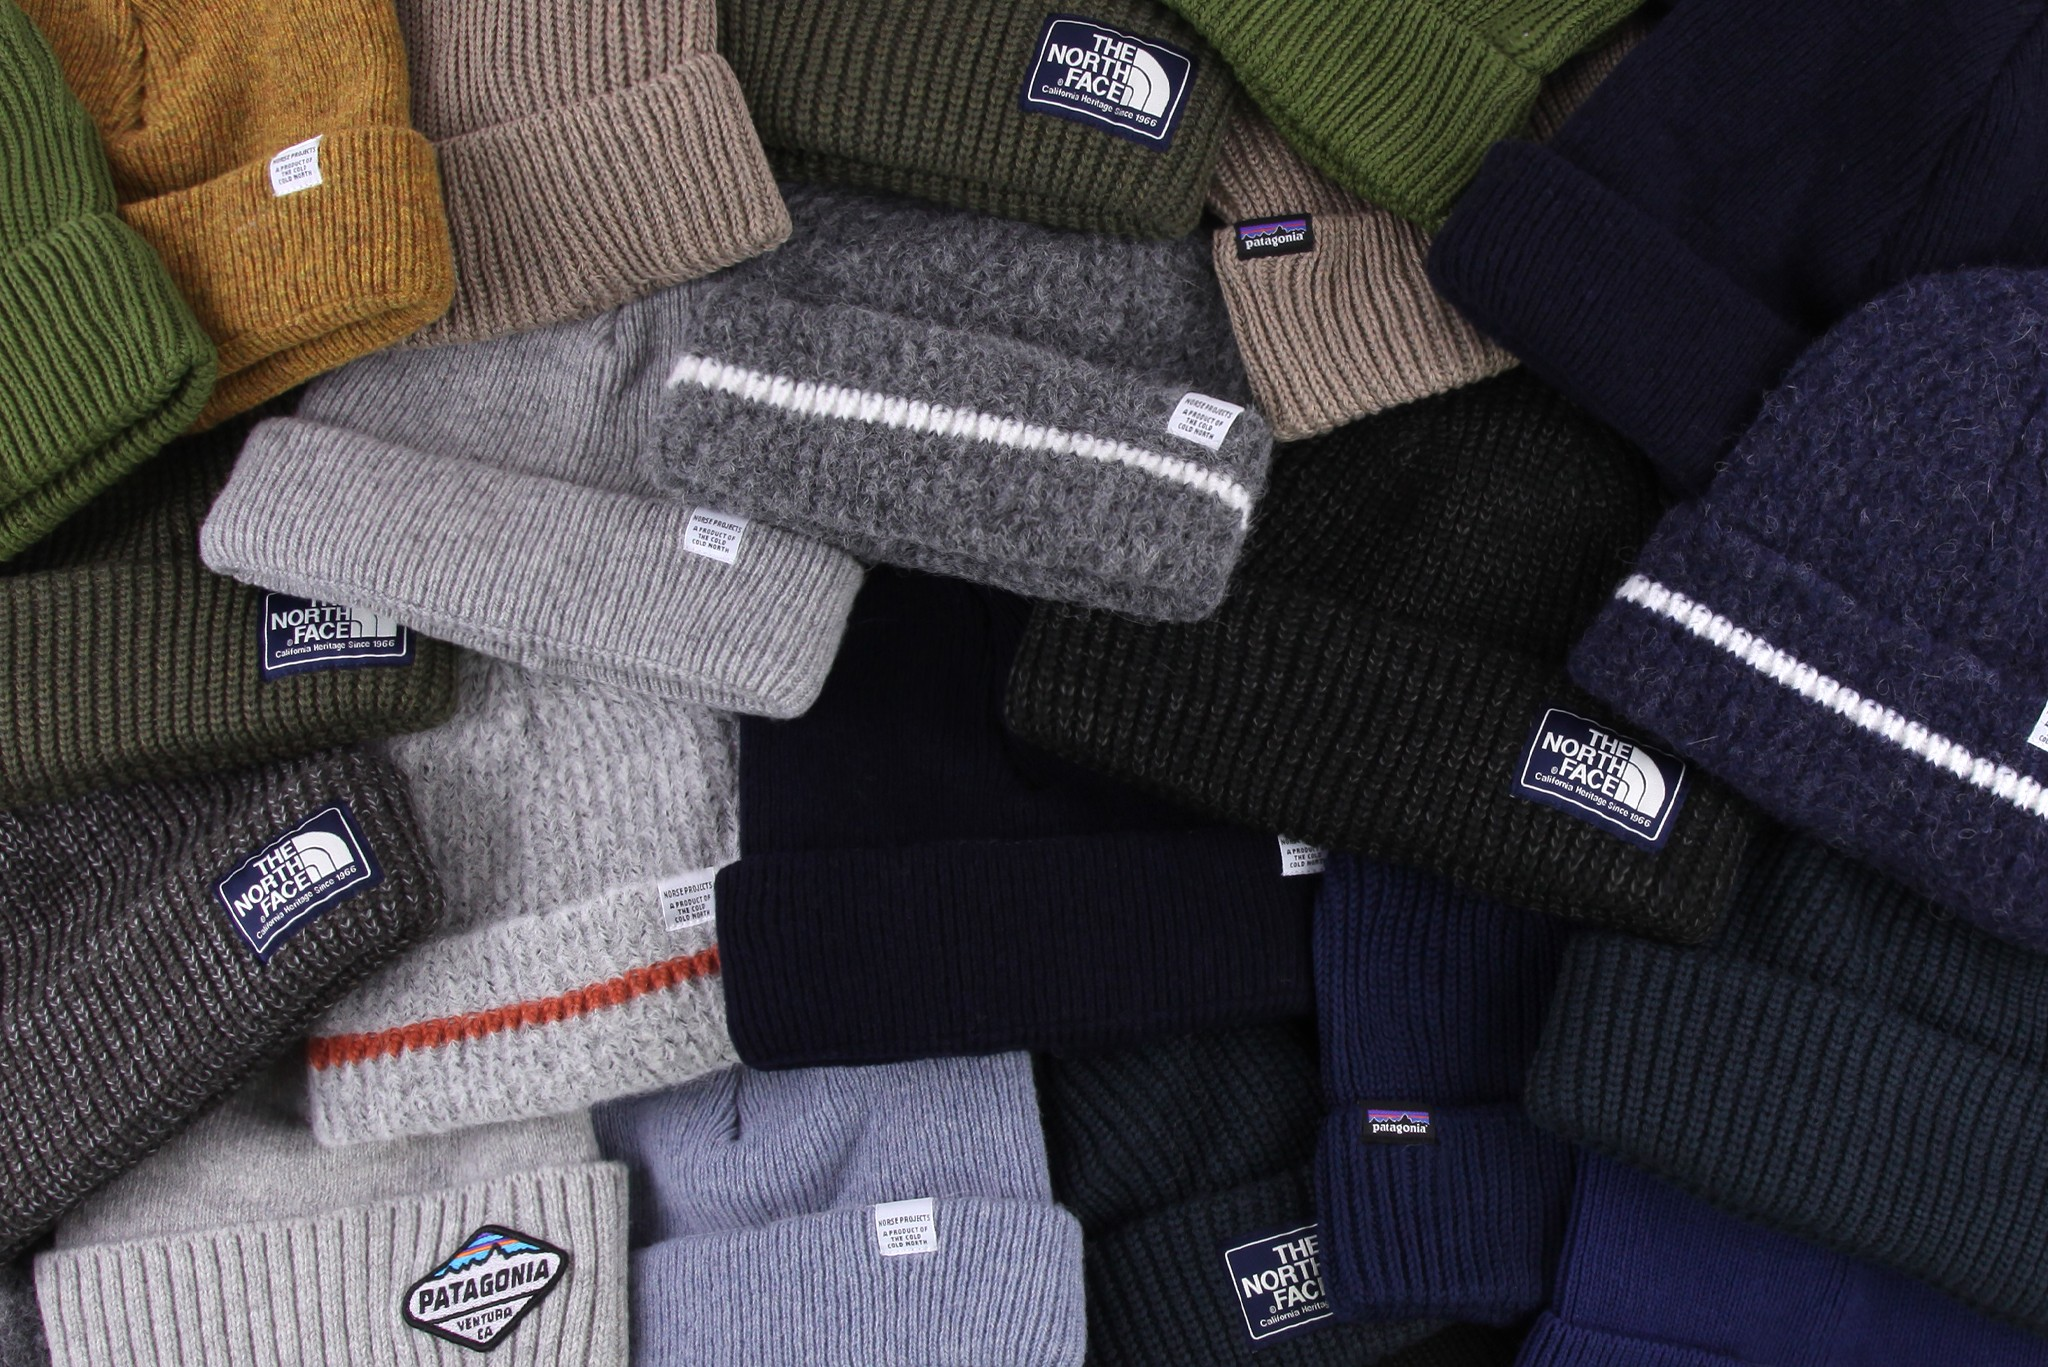 IT'S BEANIE SEASON FOLKS!